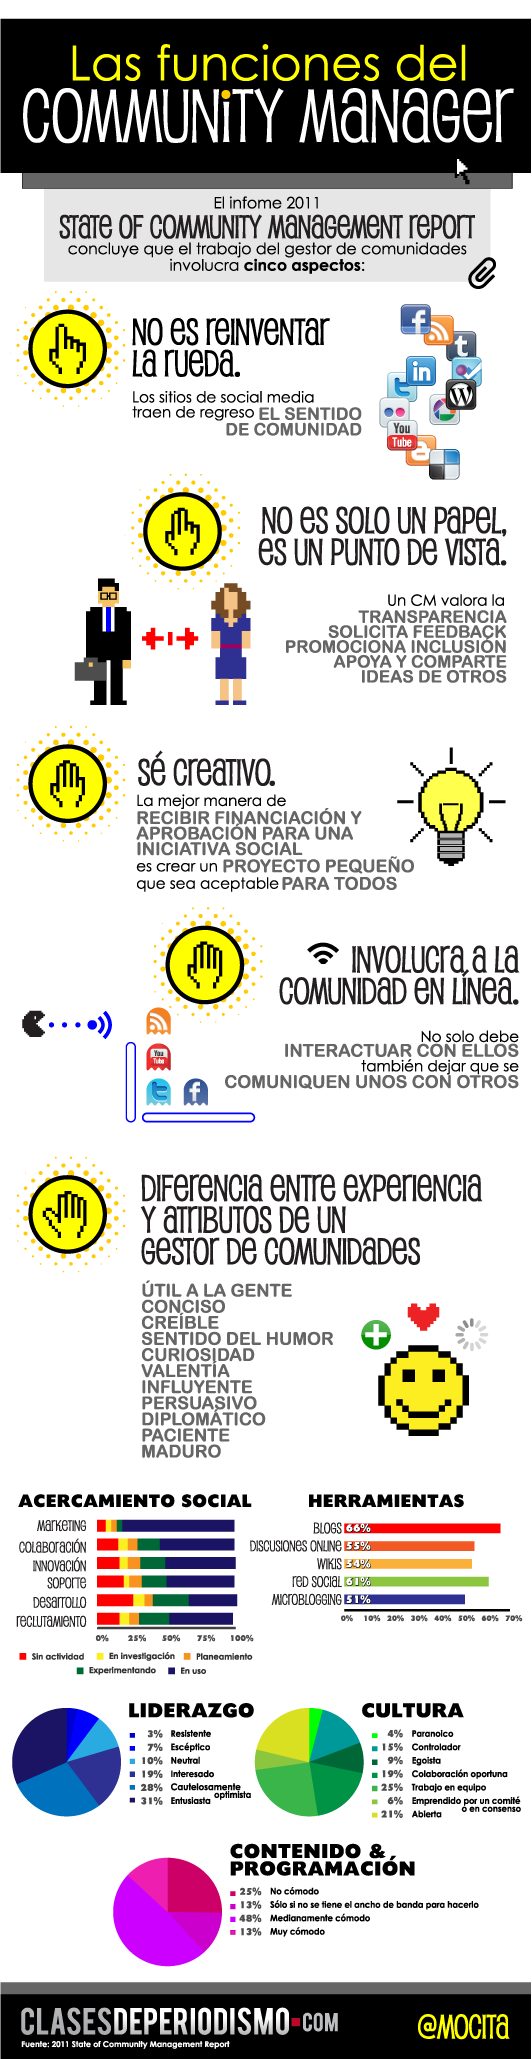 http://www.clasesdeperiodismo.com/wp-content/uploads/2011/04/info-funciones-cm-11.png